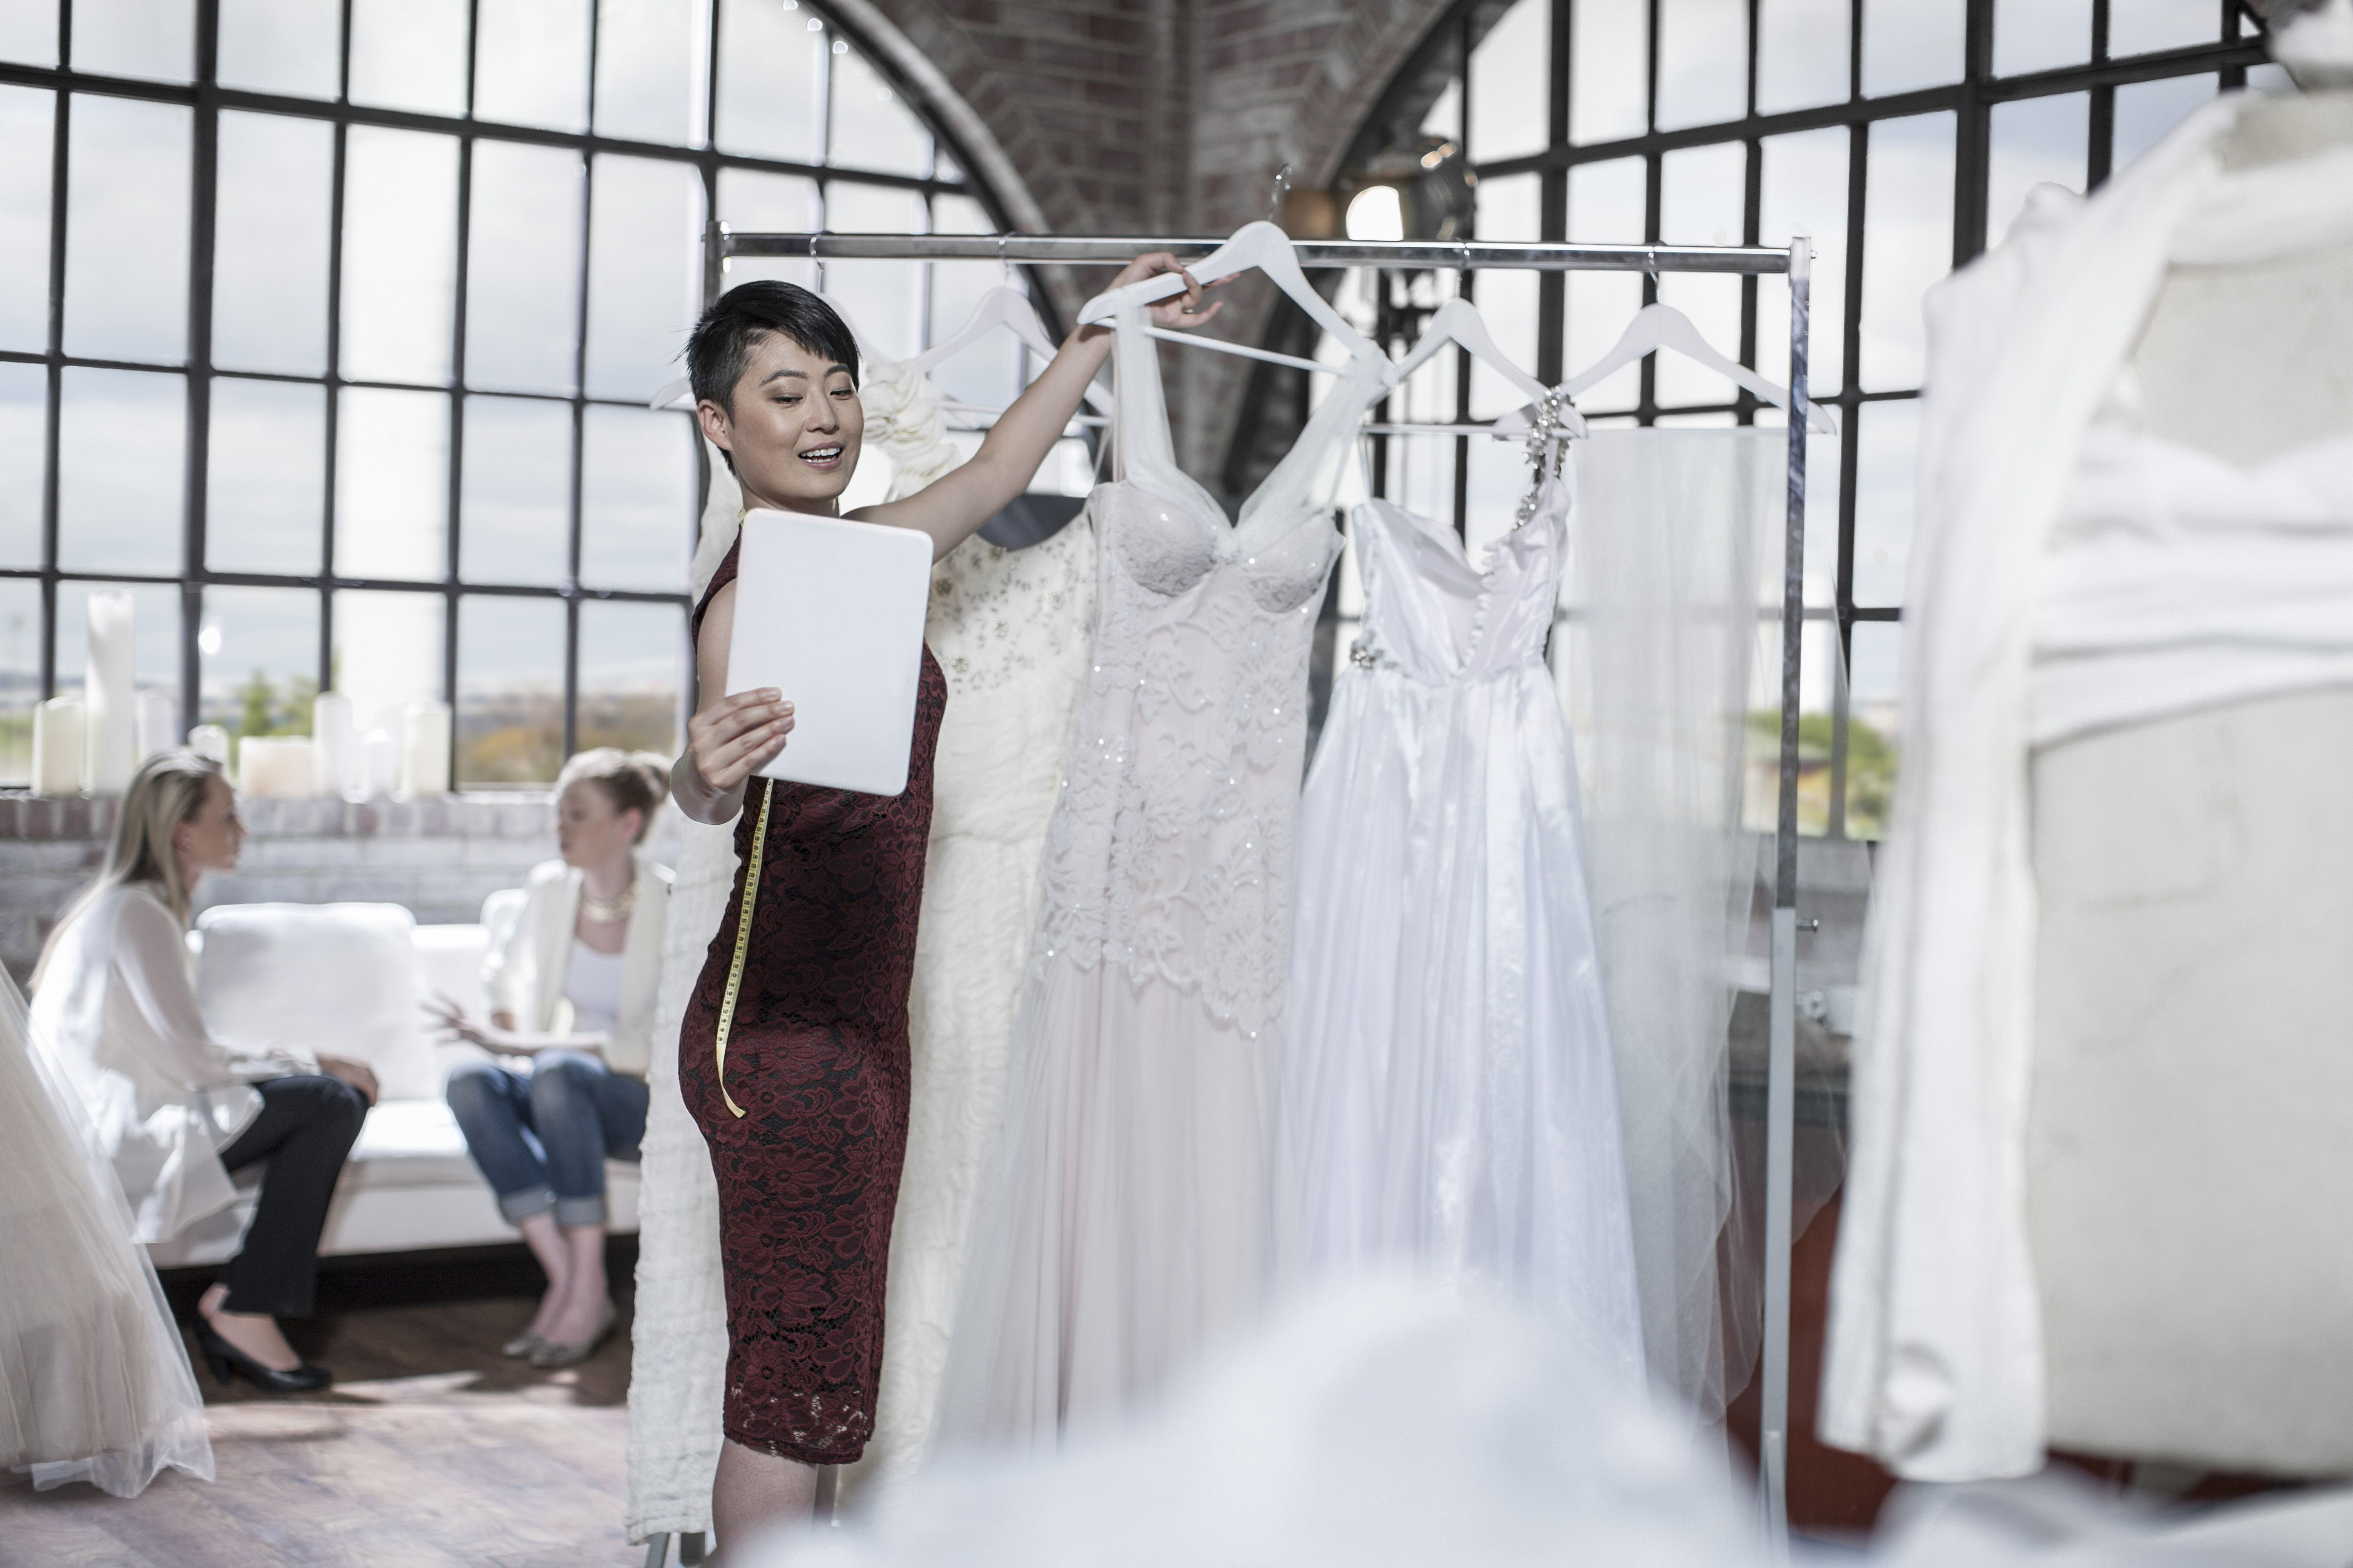 How To Organize Bridal Shows And Expos